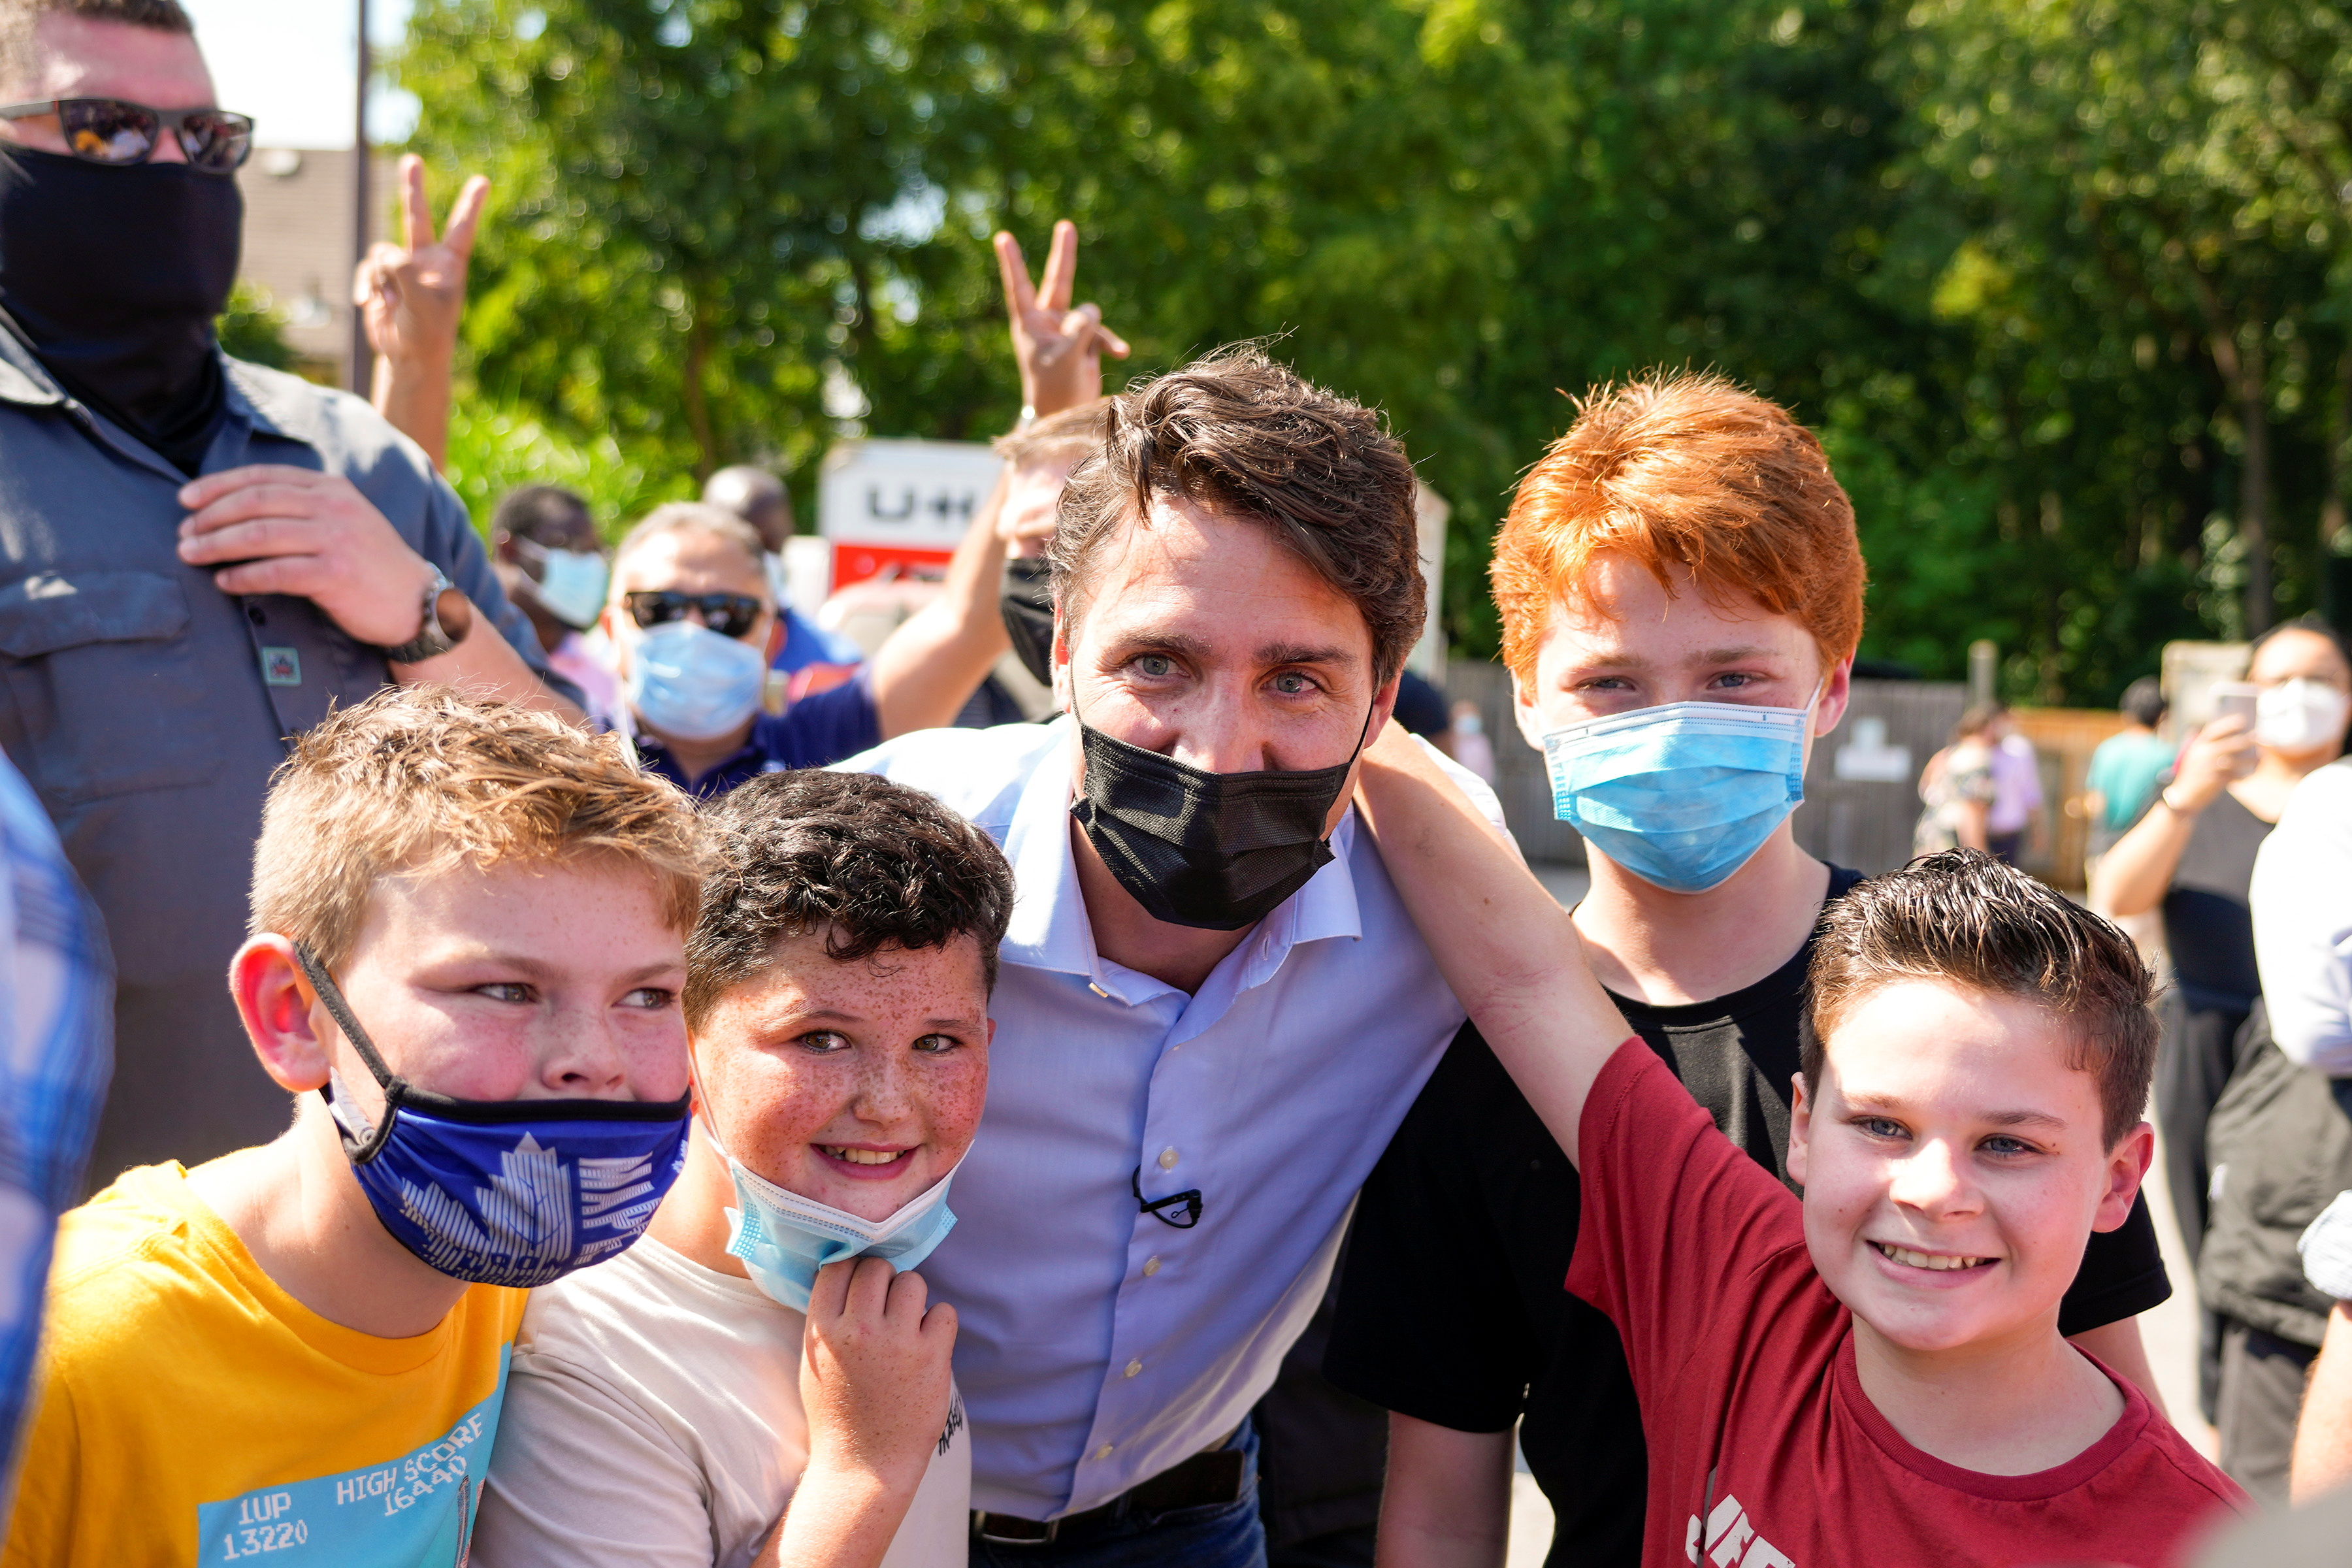 Canada's Liberal Prime Minister Justin Trudeau poses during an election campaign stop in London, Ontario Canada September 17, 2021. REUTERS/Carlos Osorio